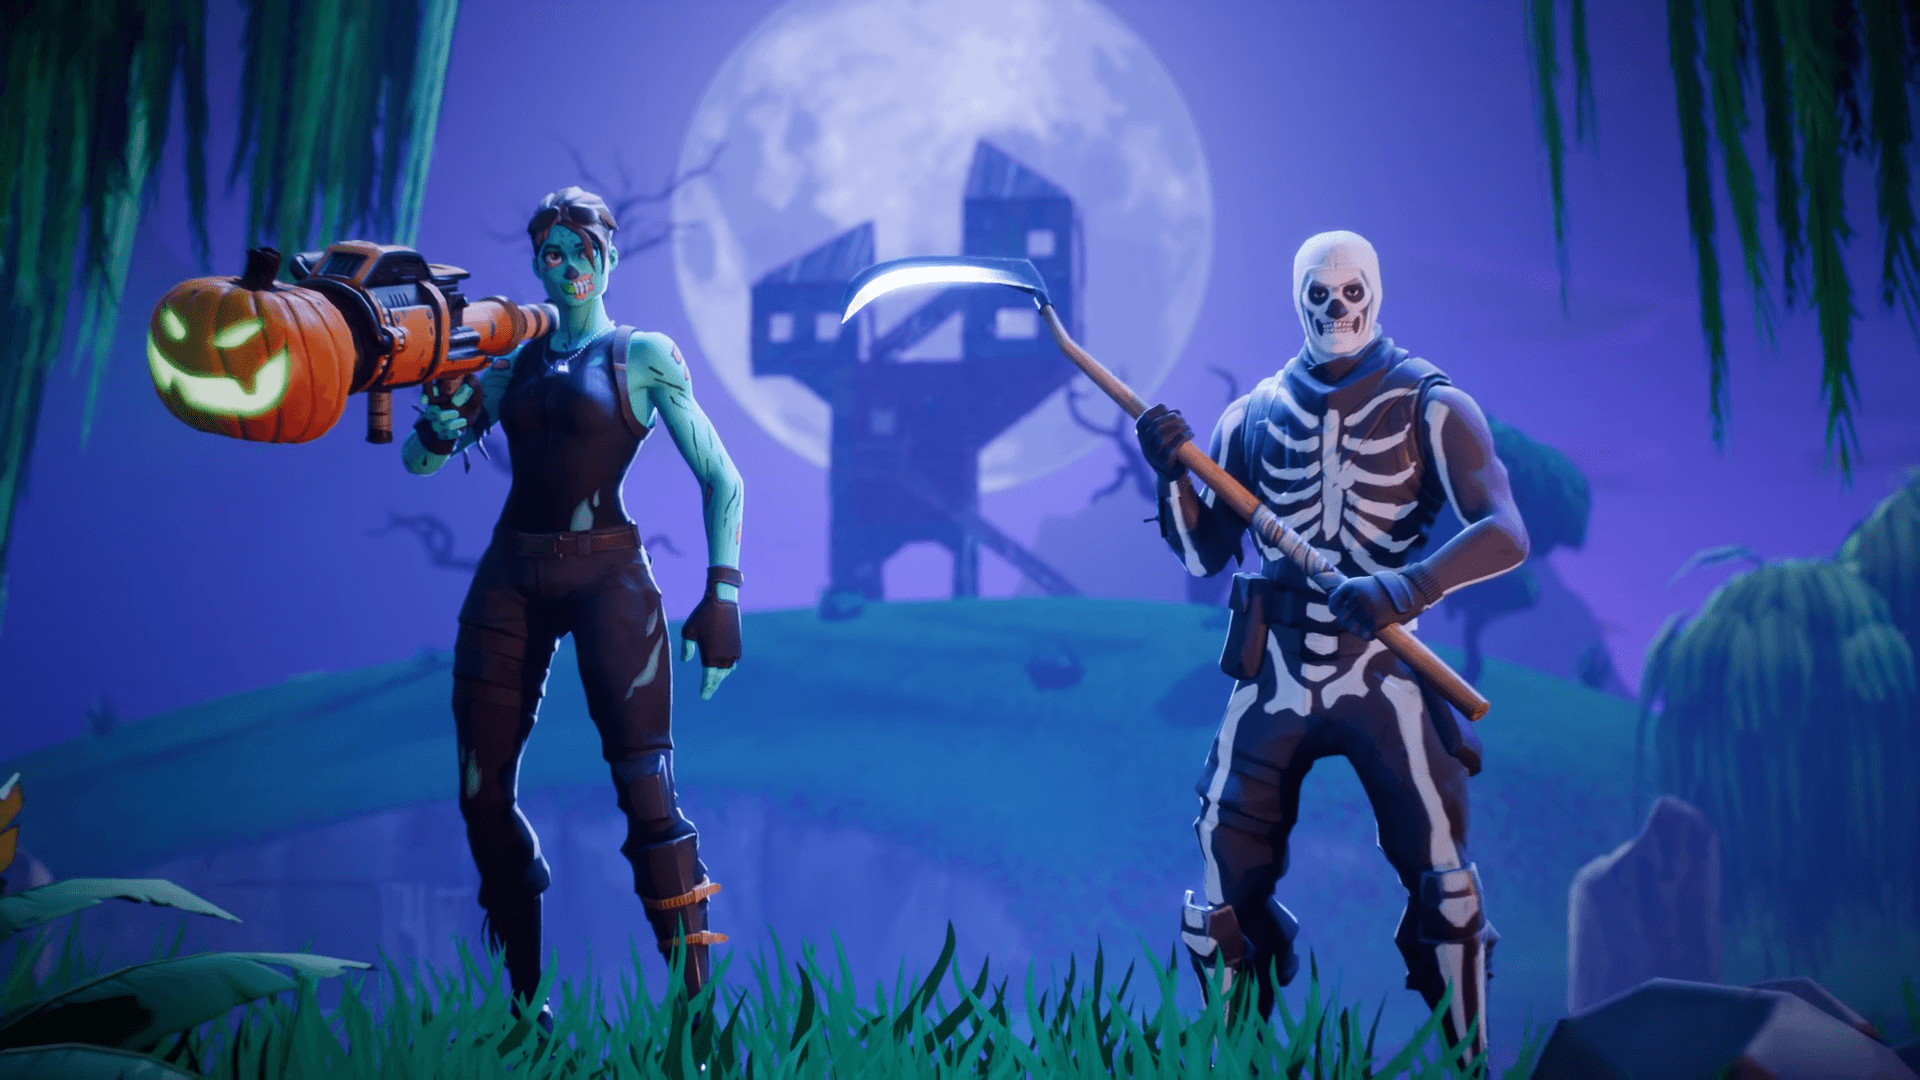 1920x1080 150 Fortnite HD Wallpapers | Background Images - Wallpaper Abyss